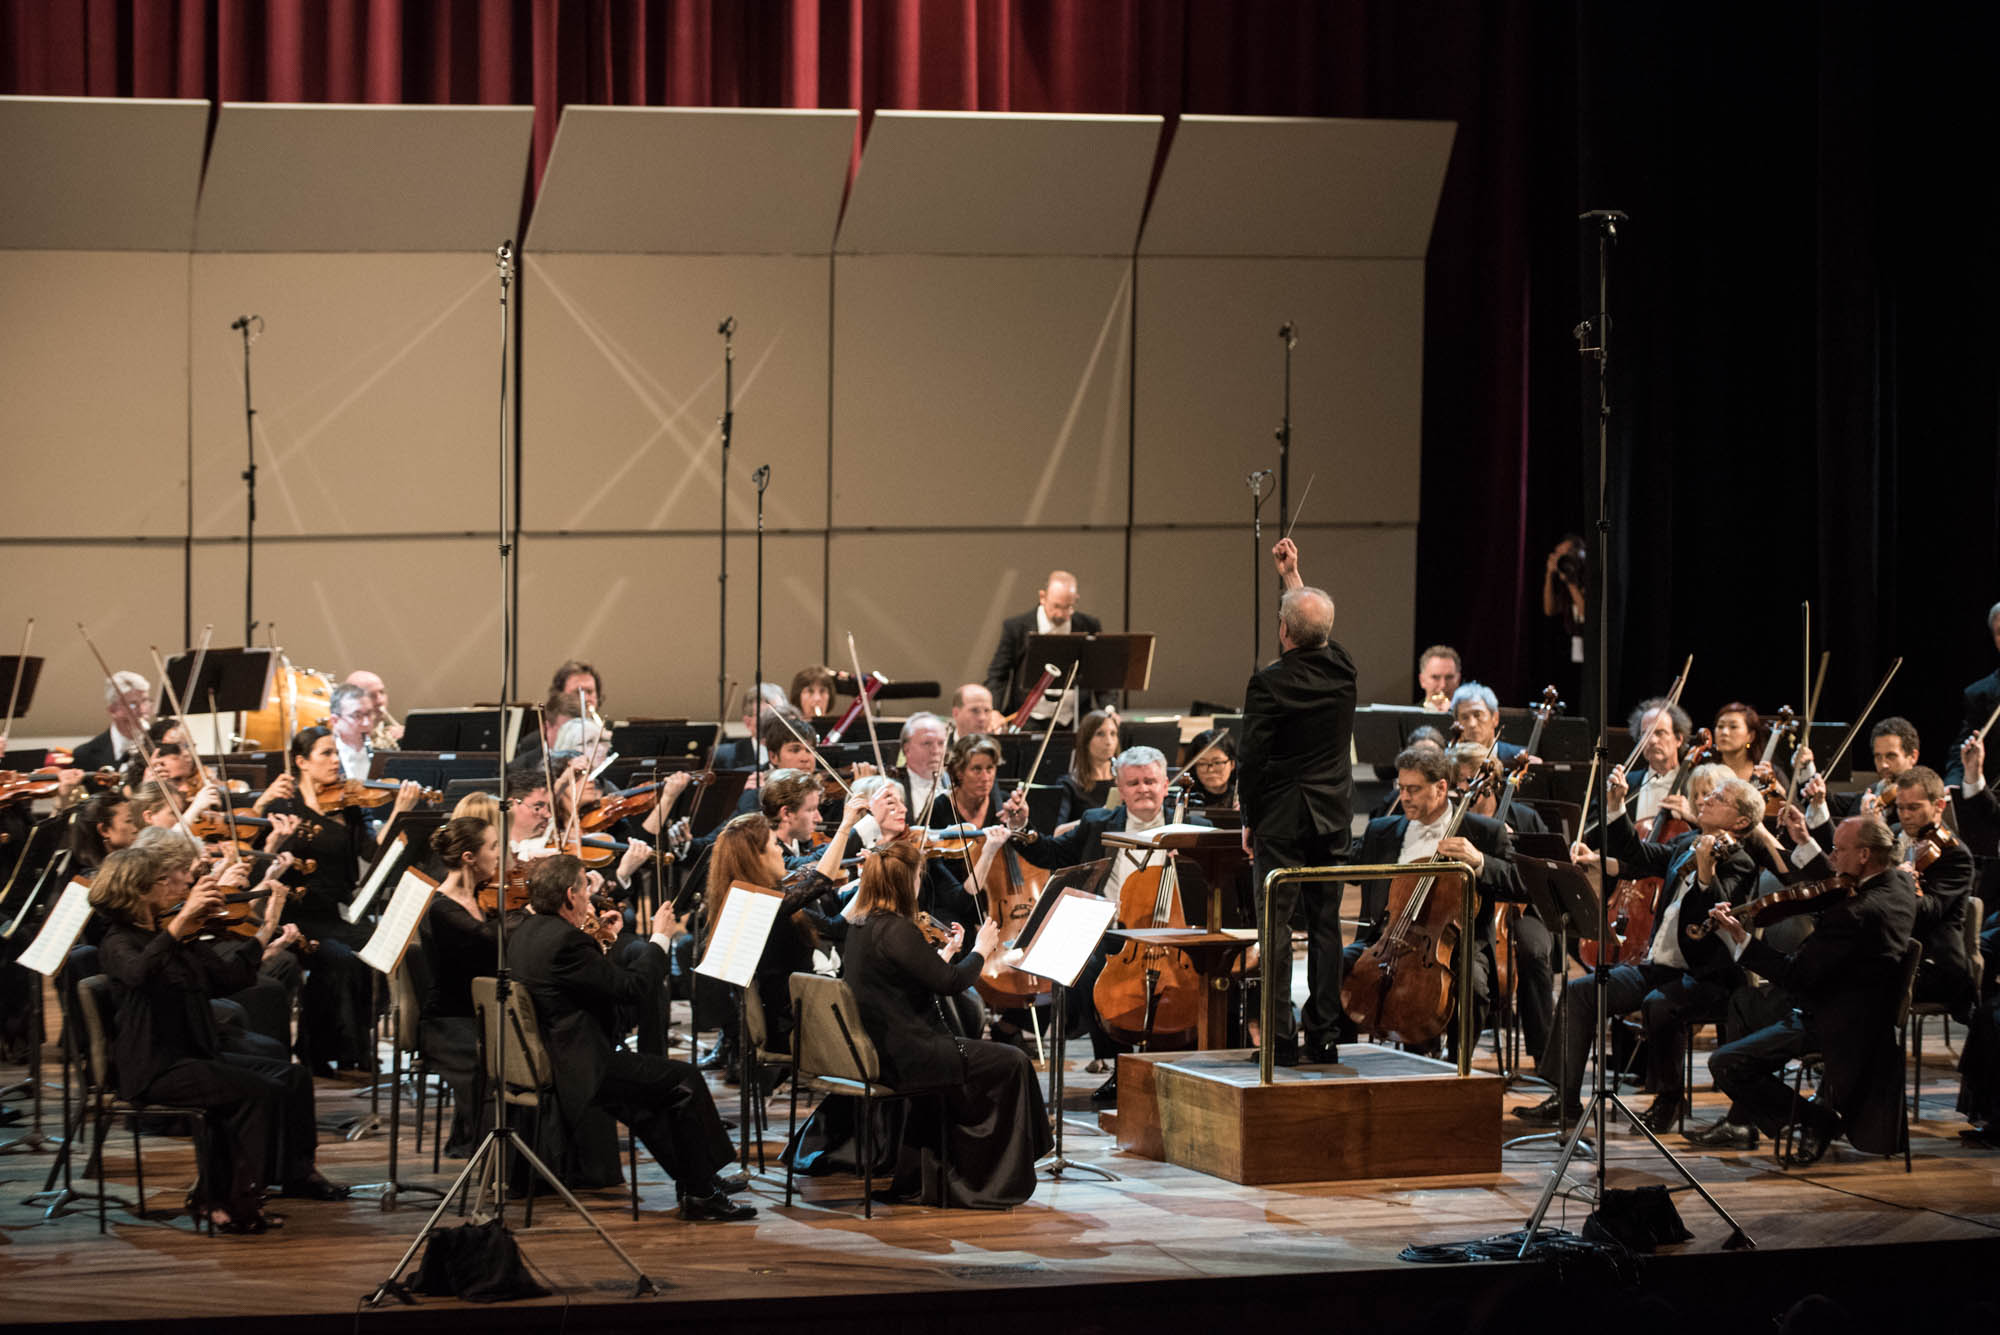 The Minnesota Orchestra onstage at the Cuban National Theater, Osmo Vänskä conducting.